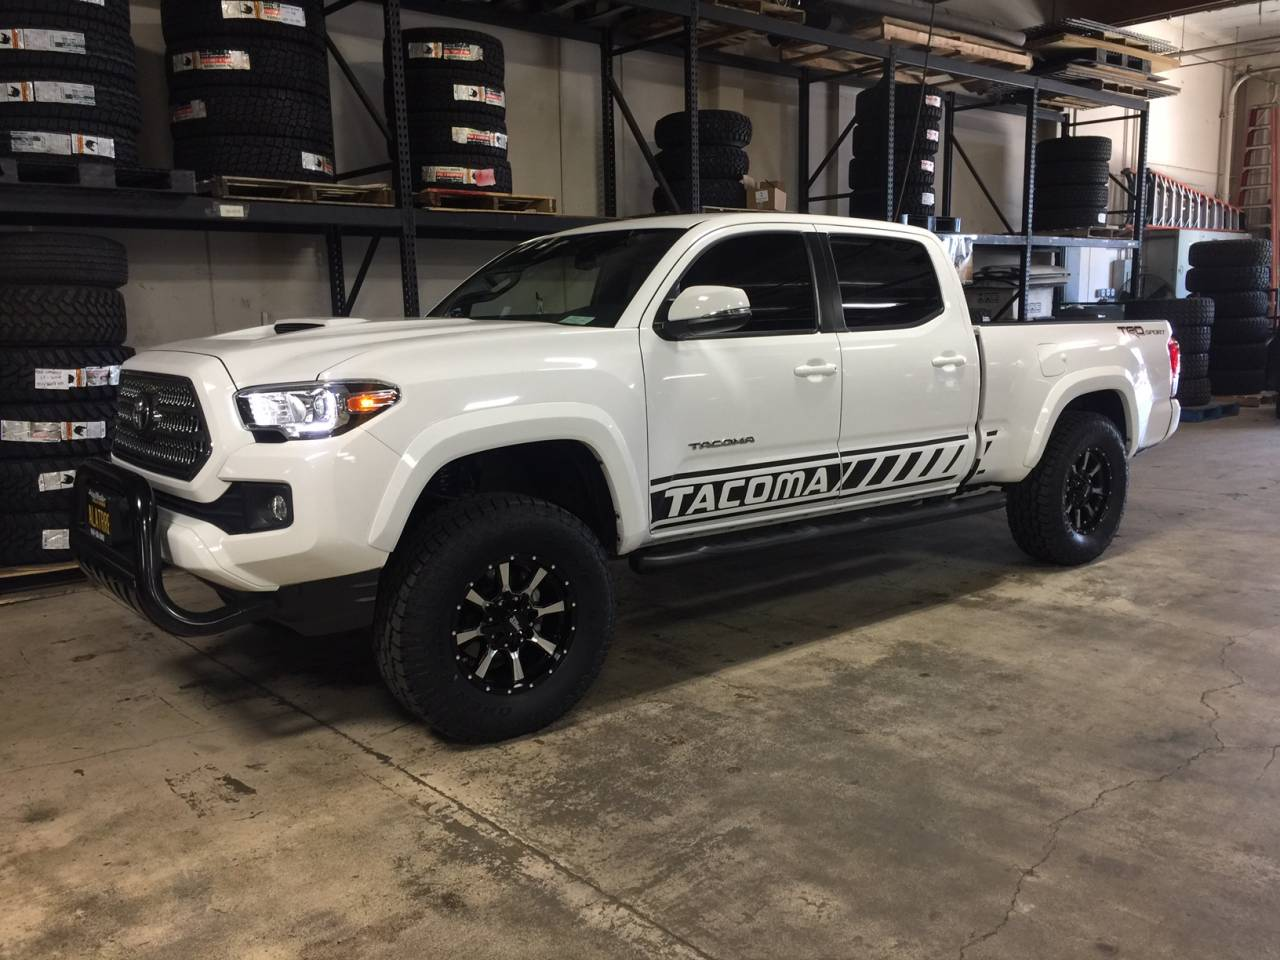 Photo Gallery - 2017 White Tacoma